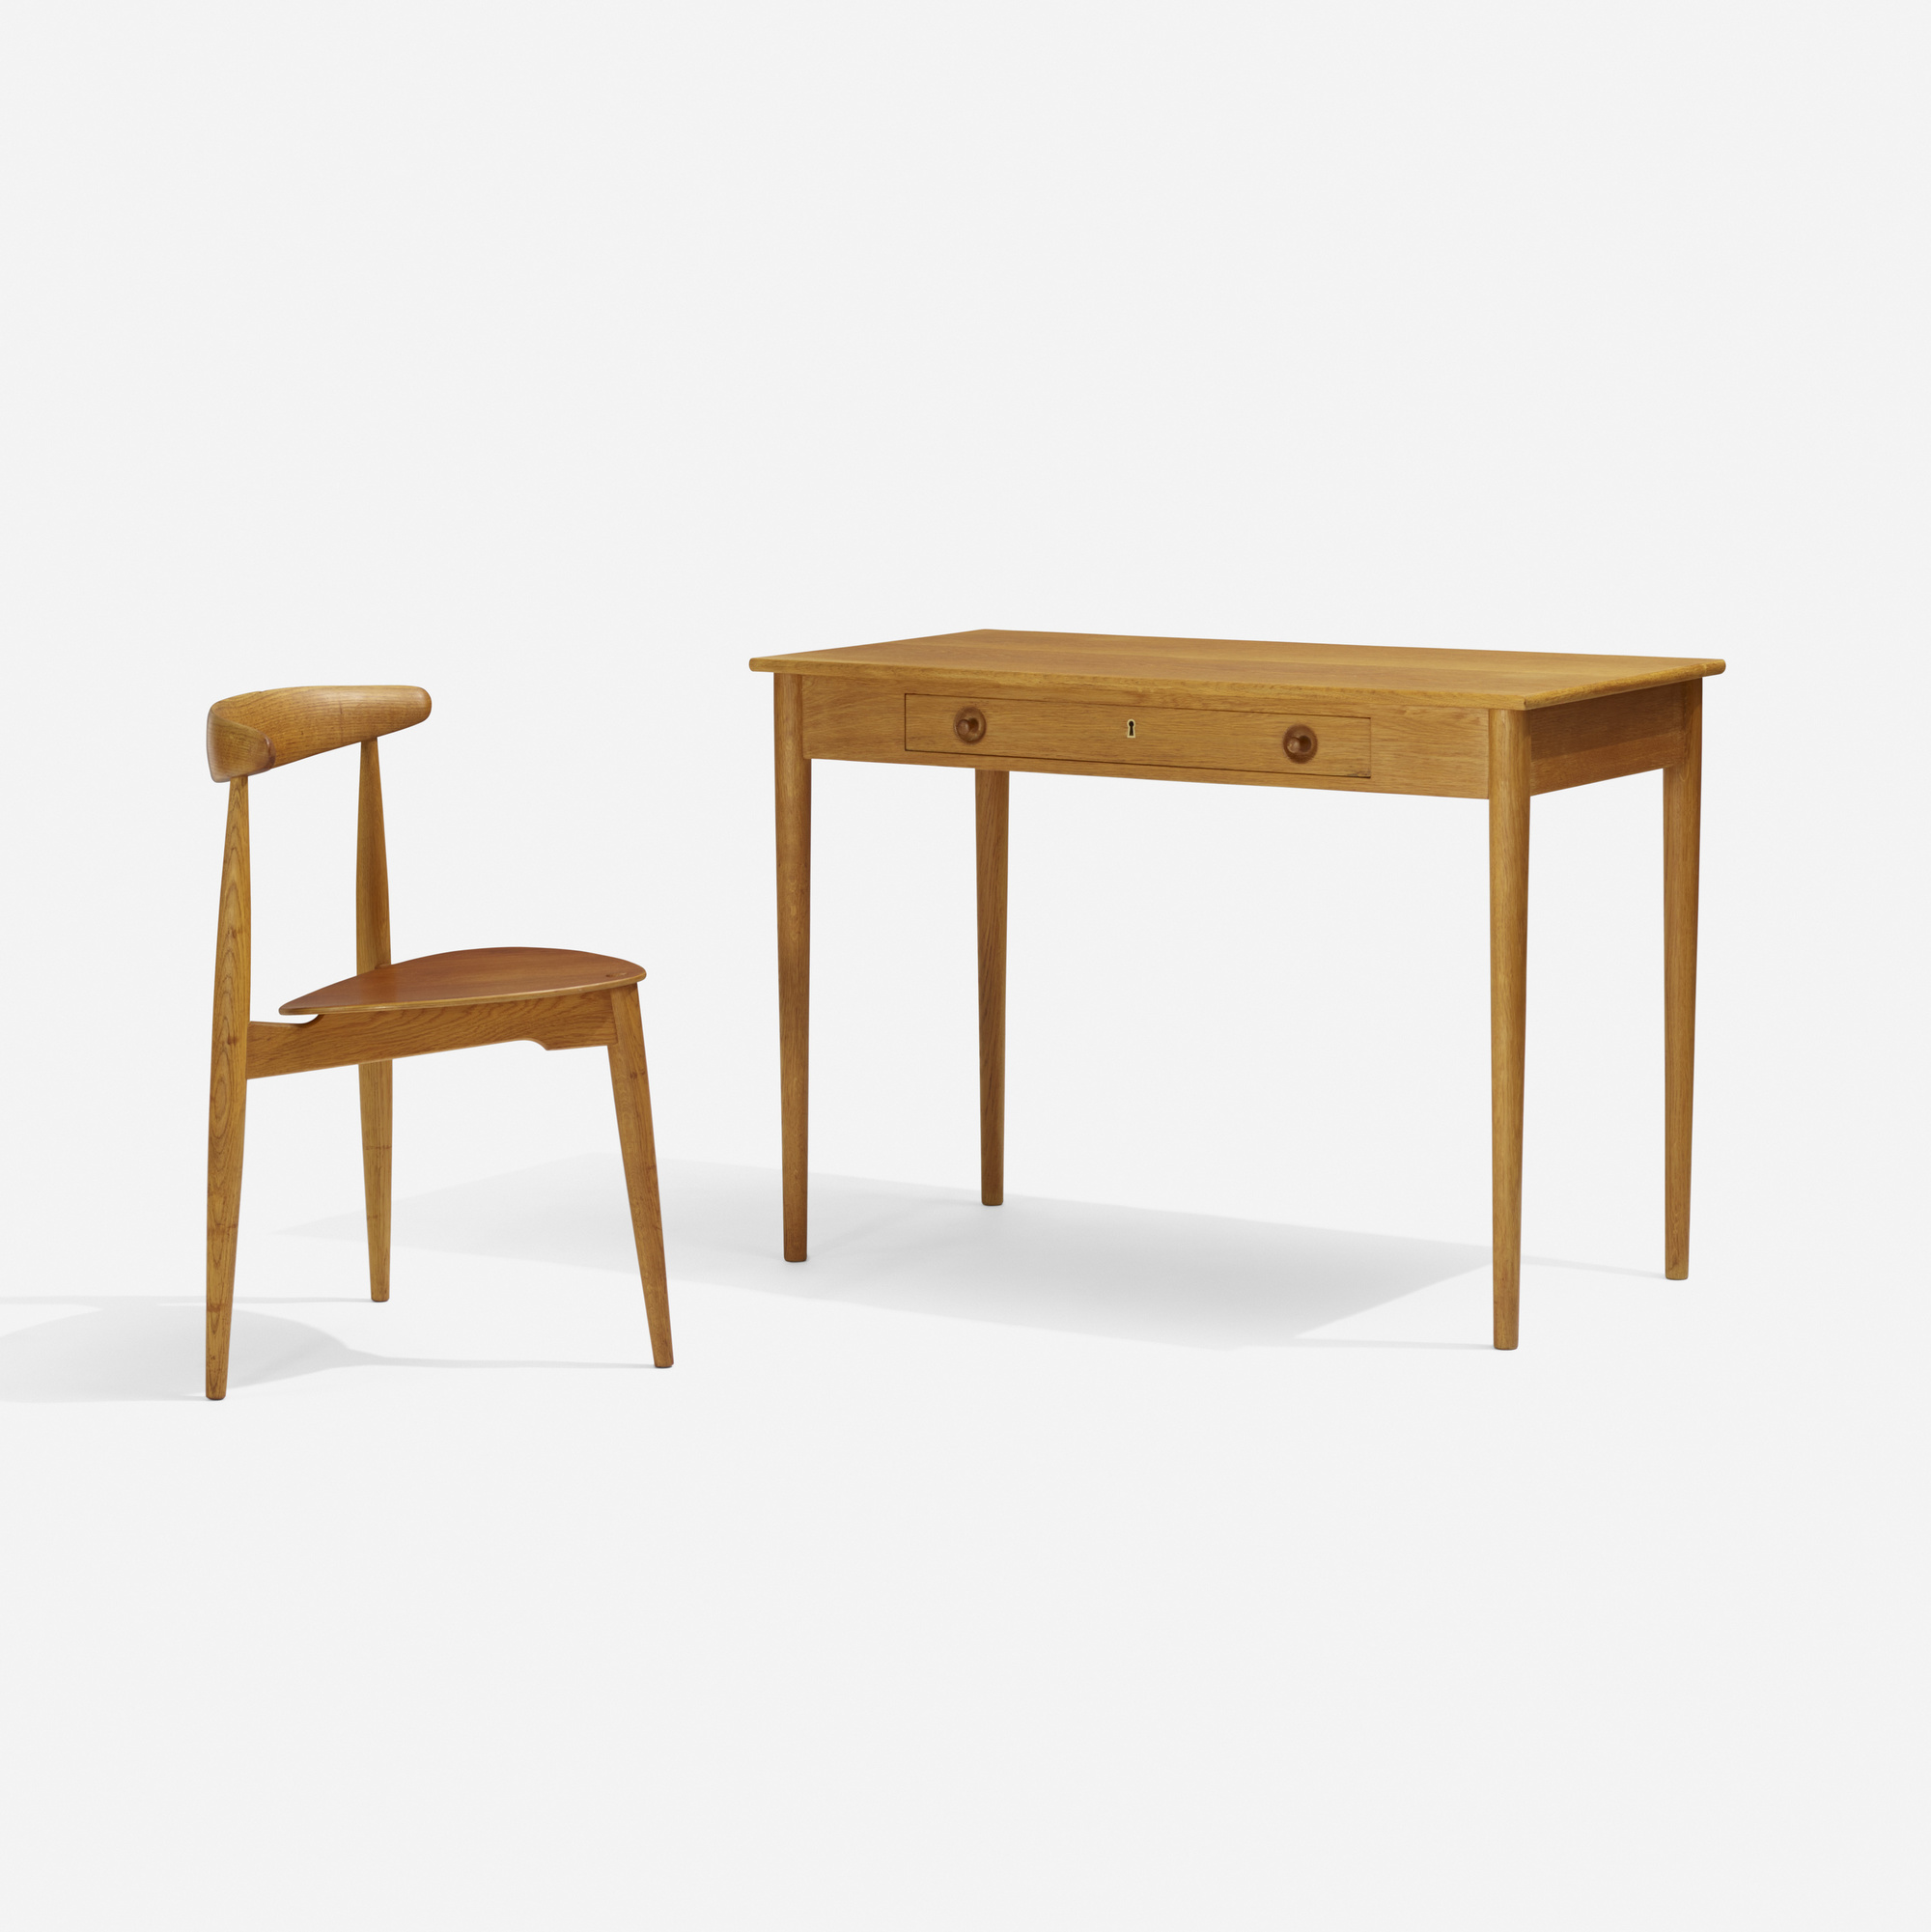 130: Hans J. Wegner / desk and Heart chair (1 of 3)